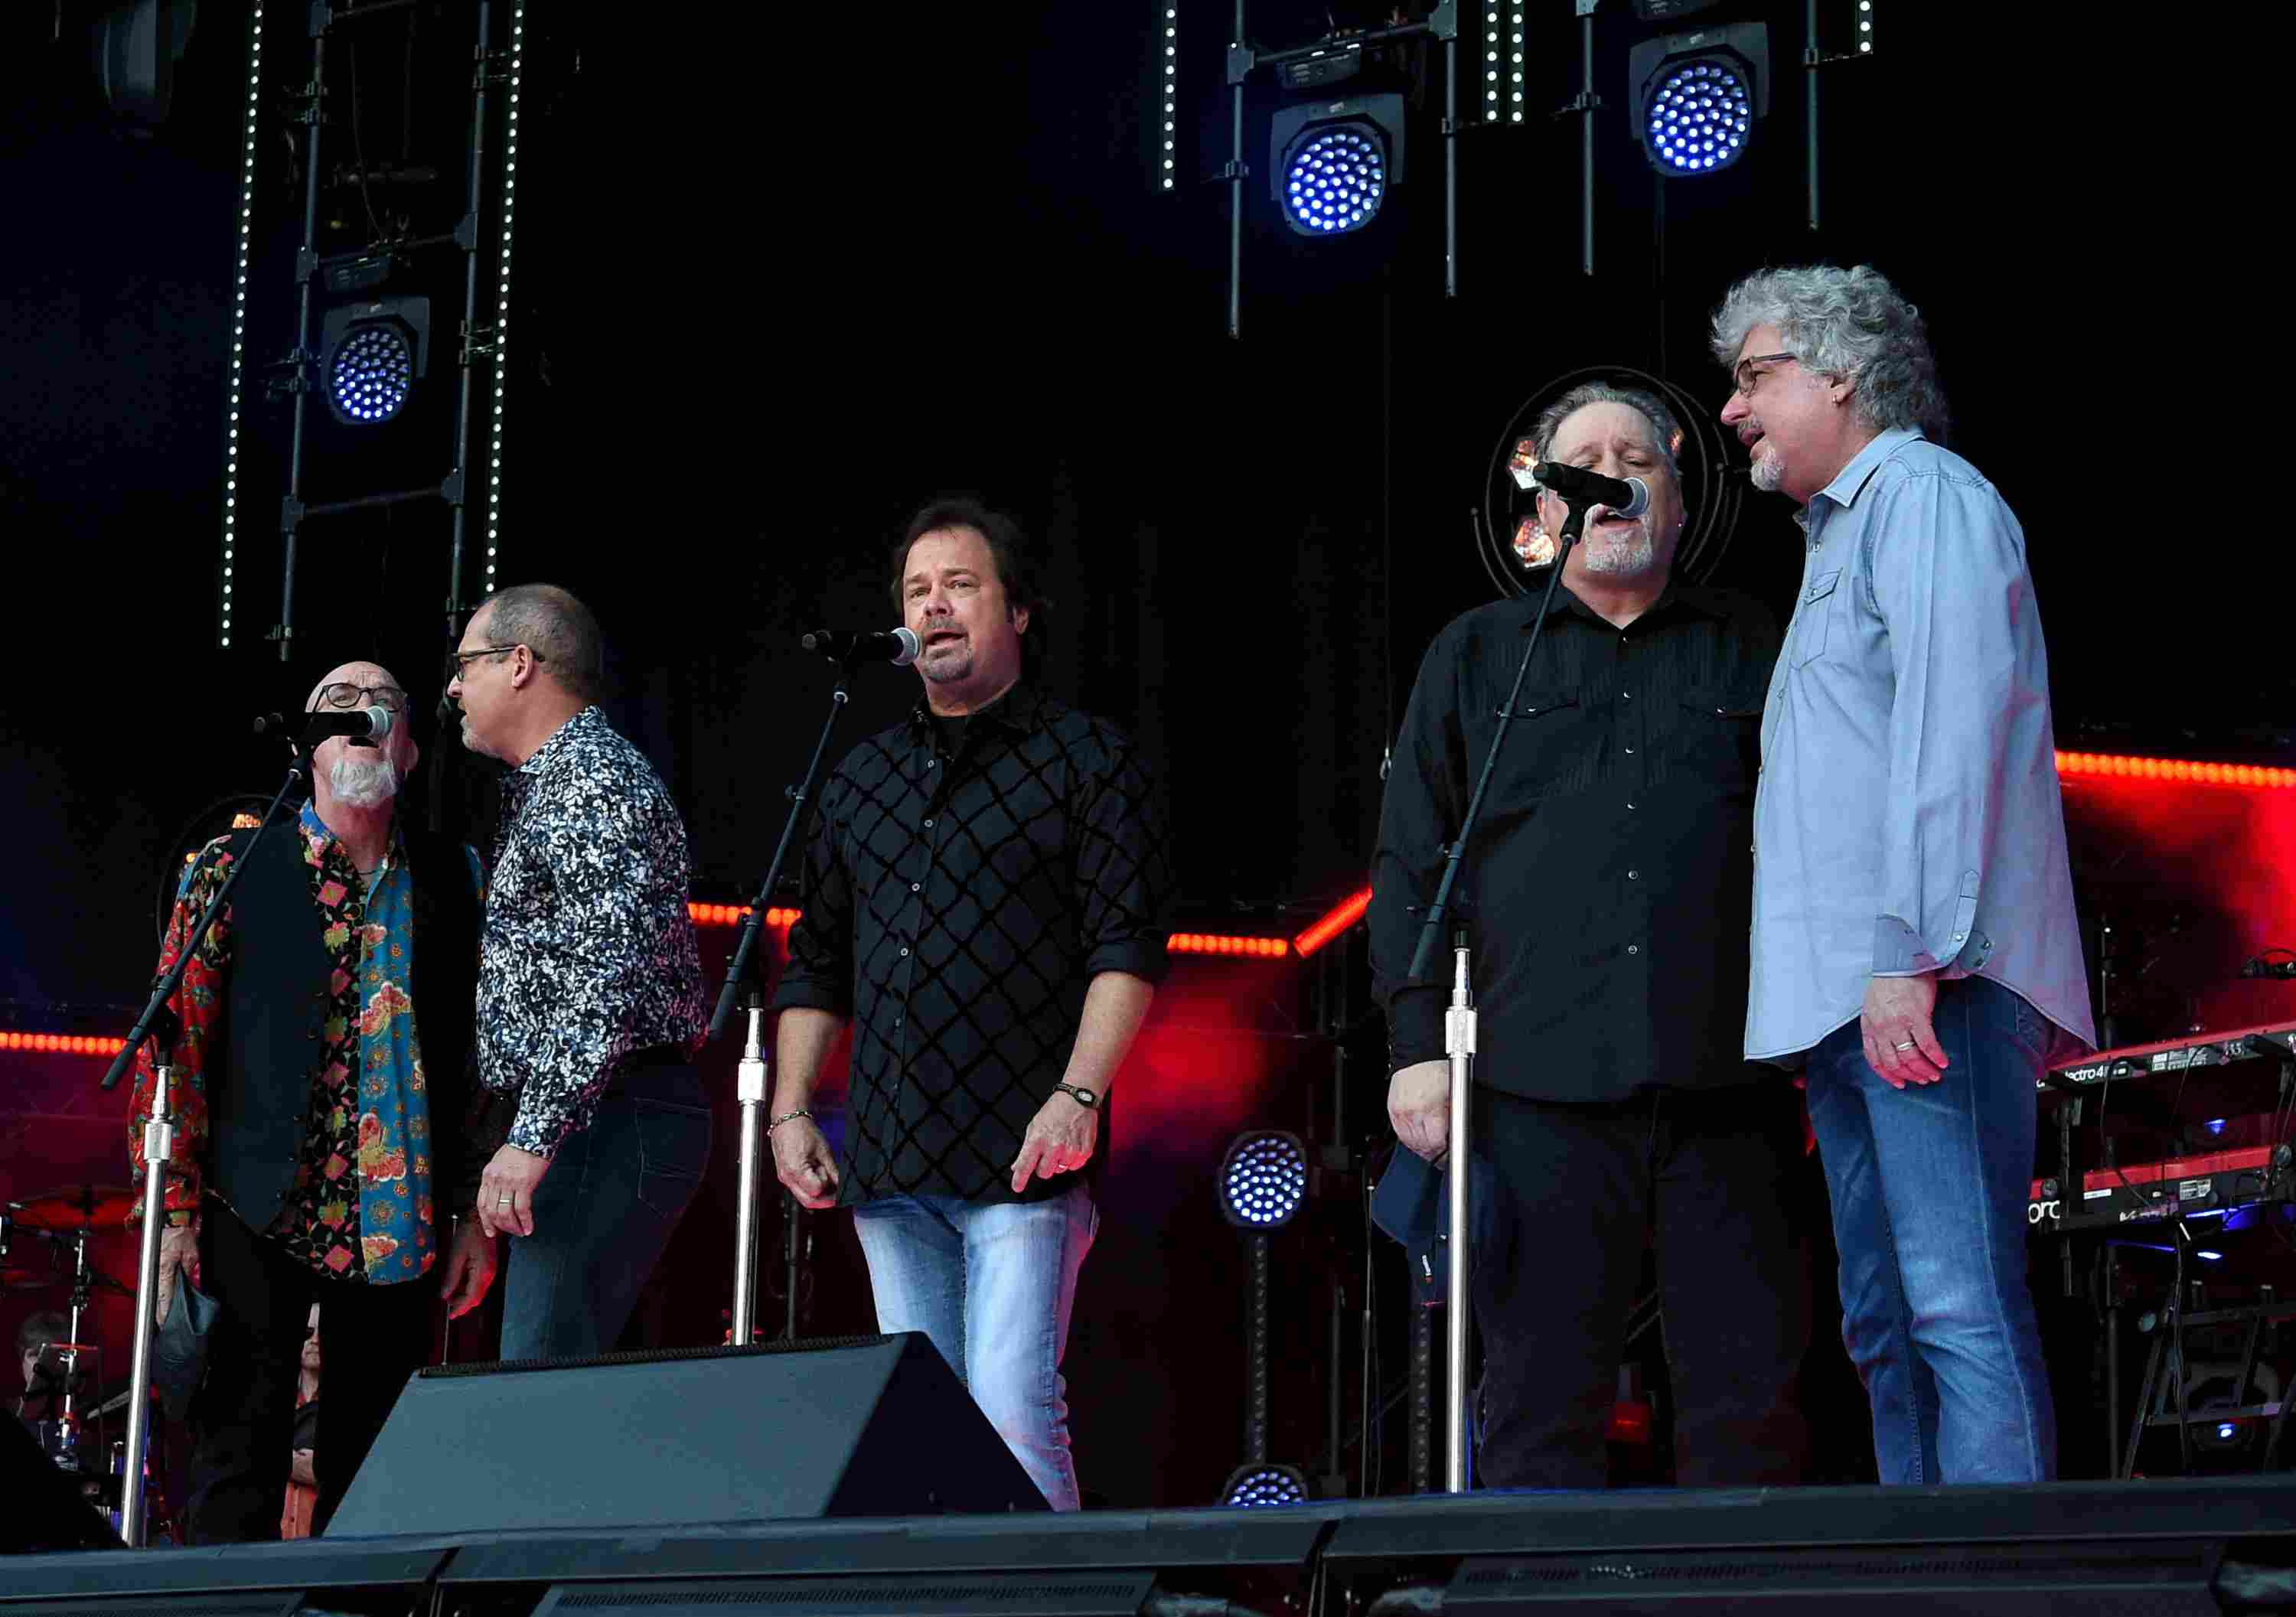 Restless Heart performing onstage.